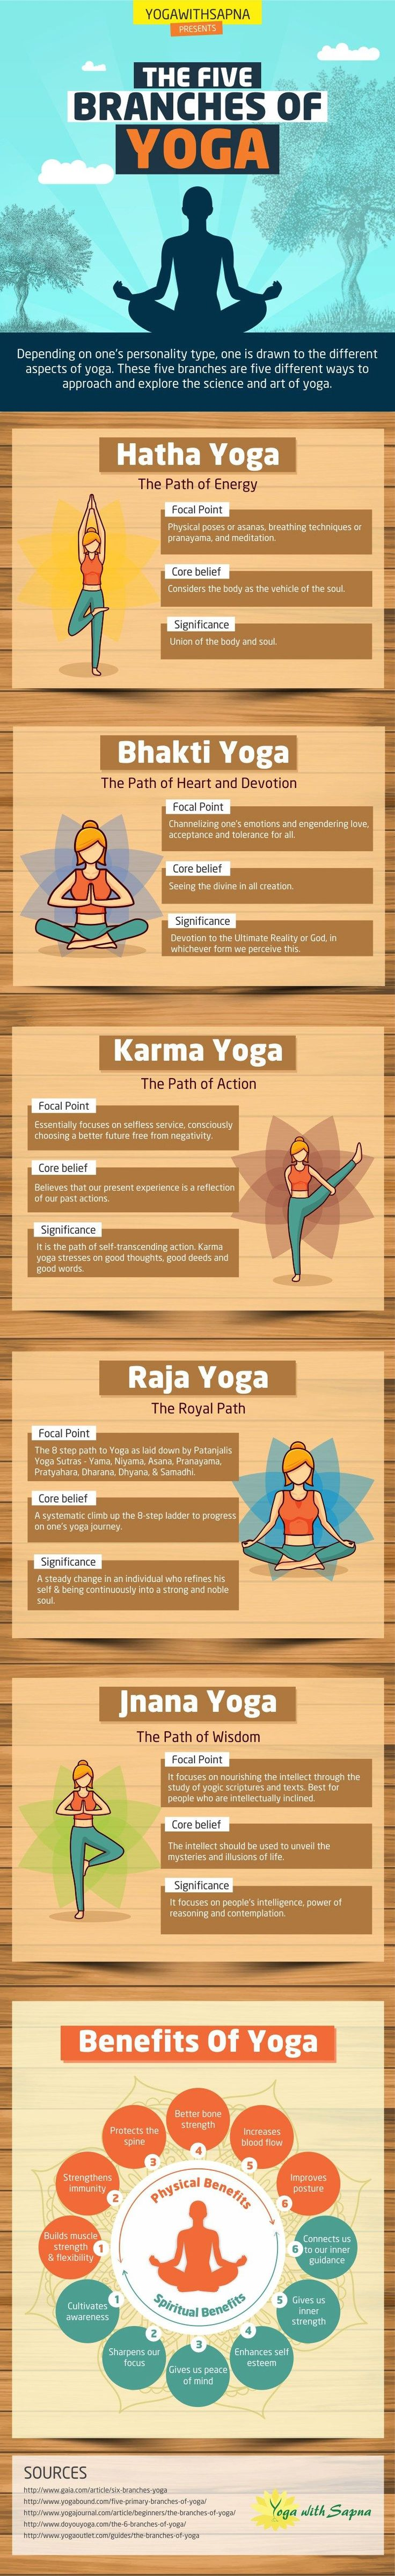 The Five Traditional Branches of Yoga [Infographic]